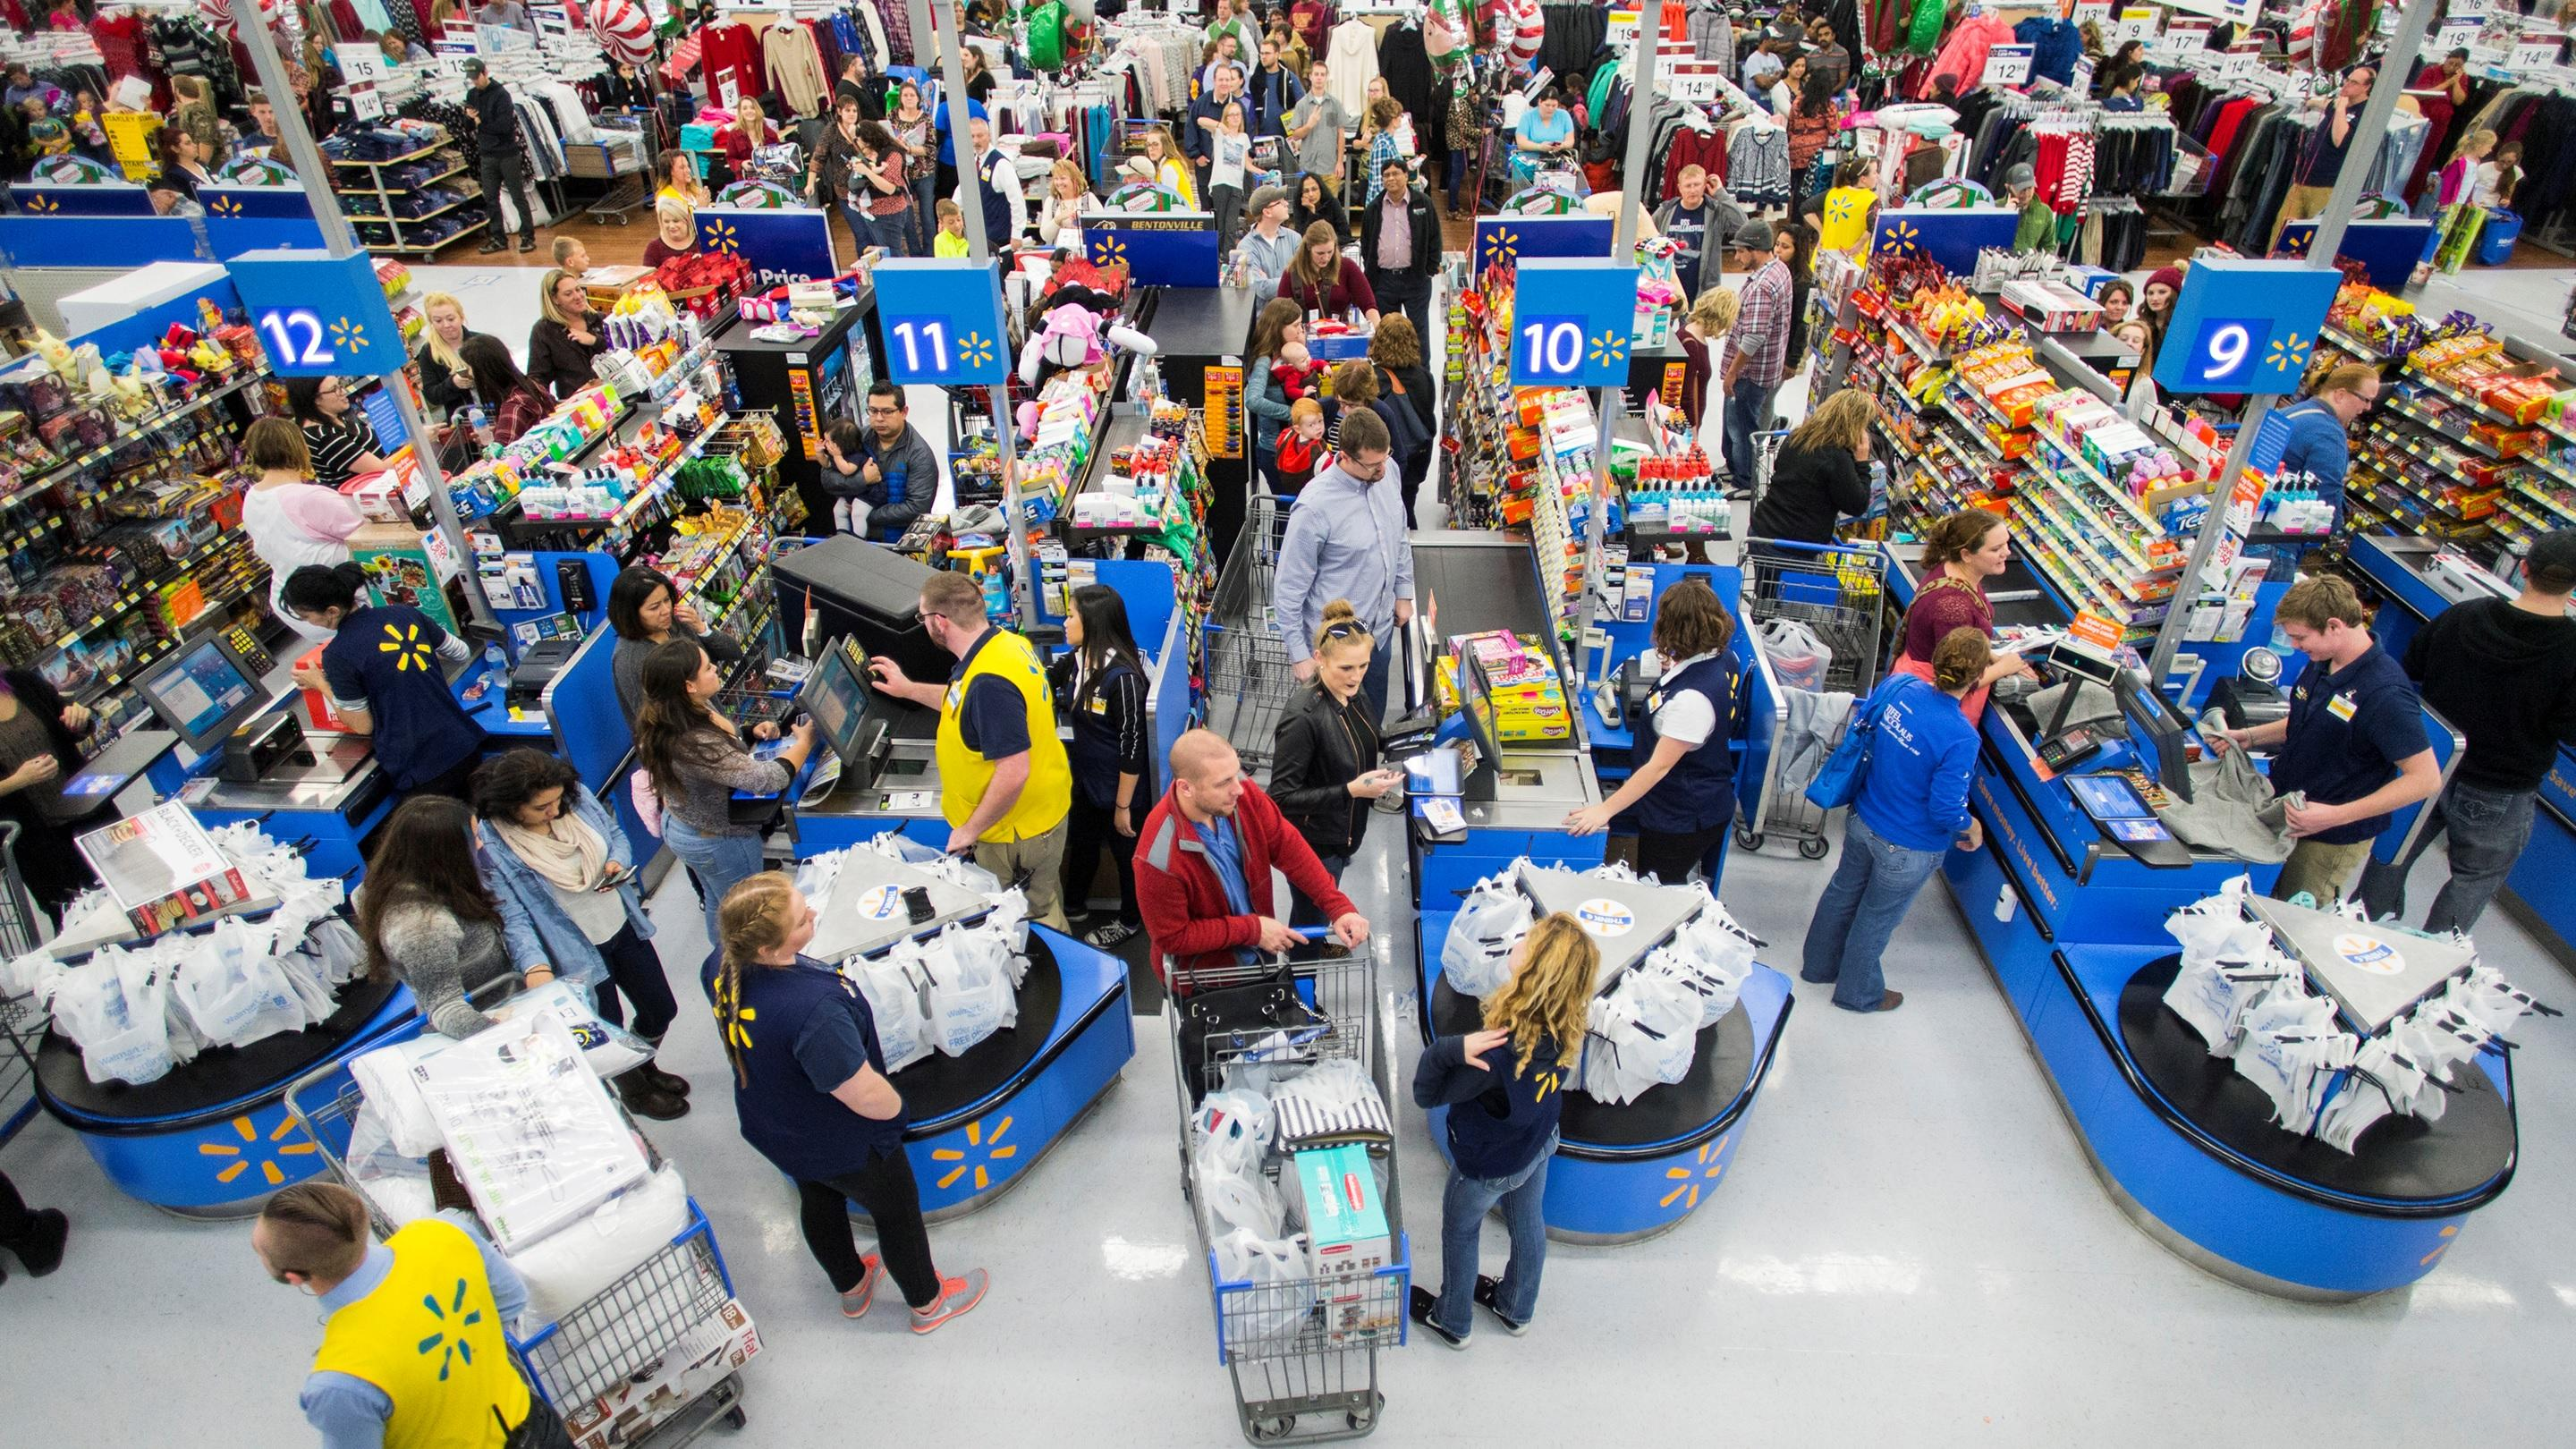 Weak profit guidance clips Wal-Mart